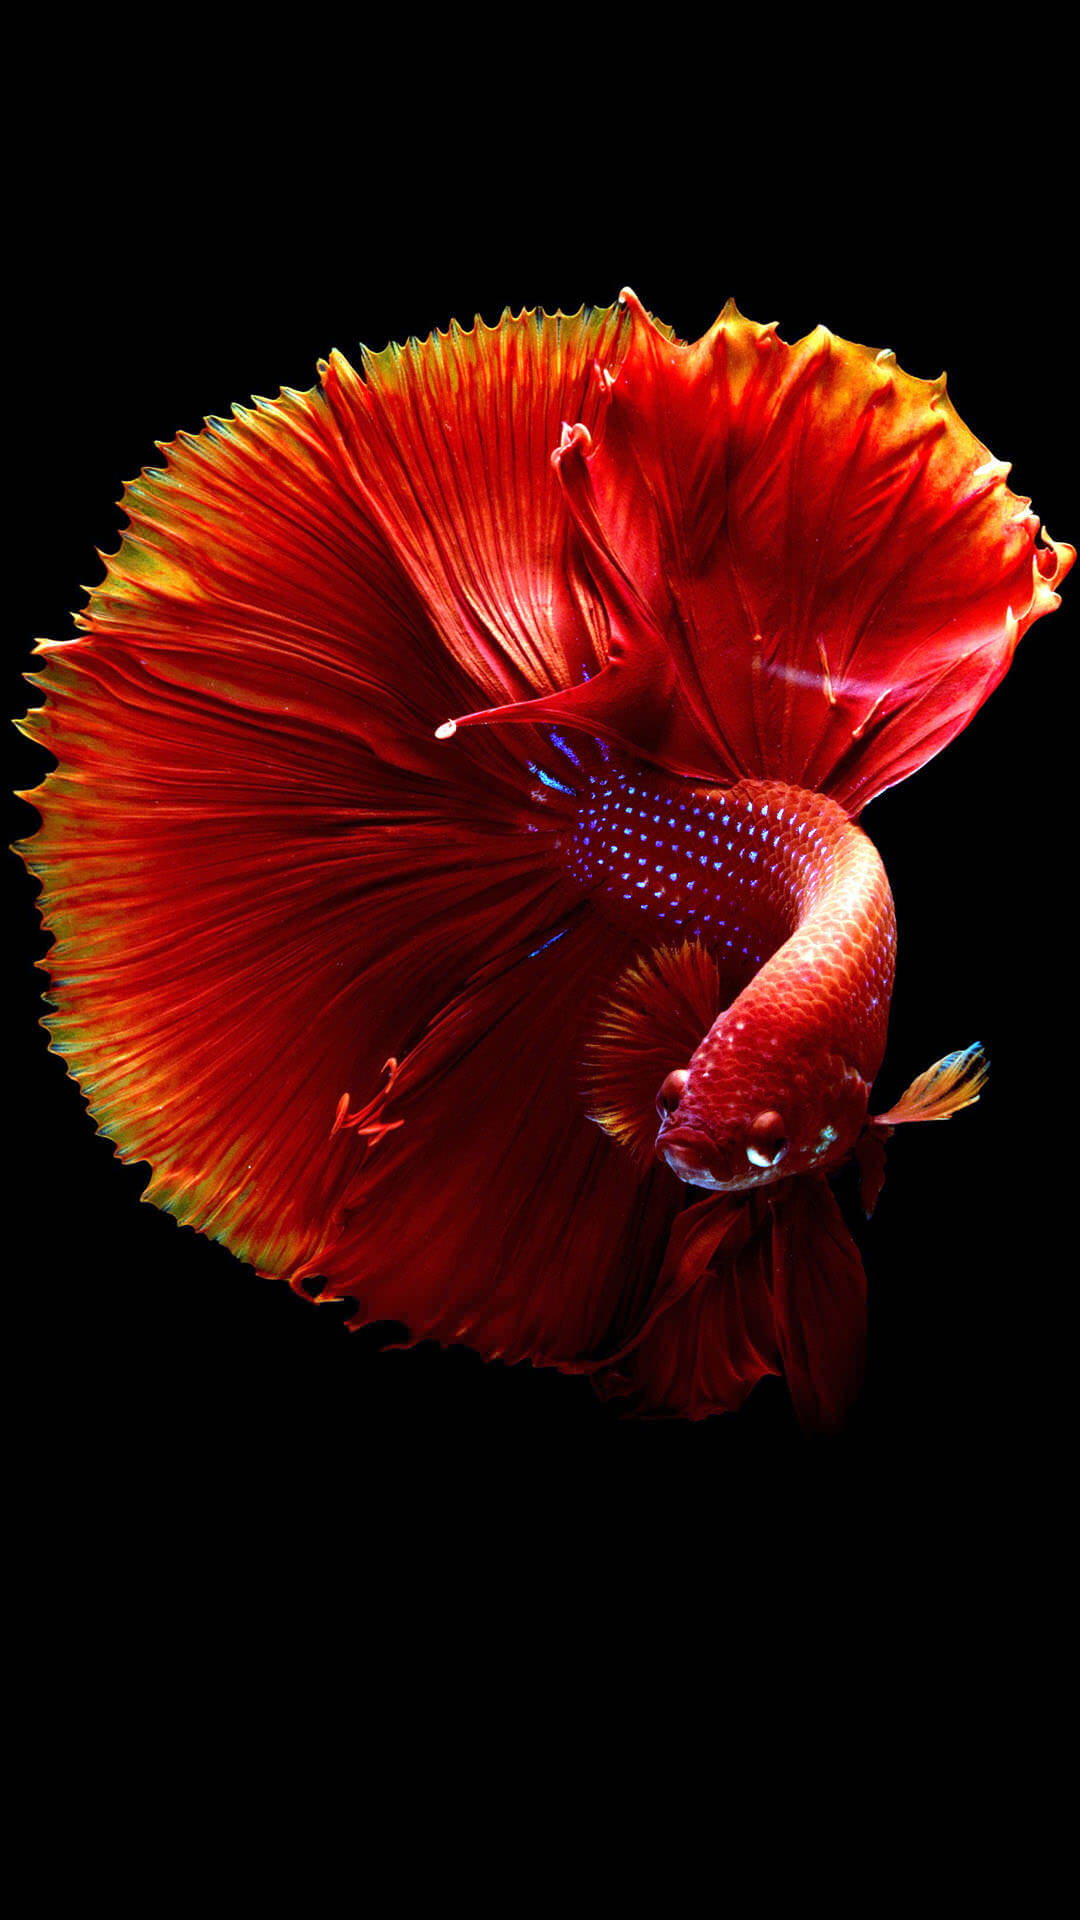 25+ Best Fish Wallpapers For Iphone - Templatefor